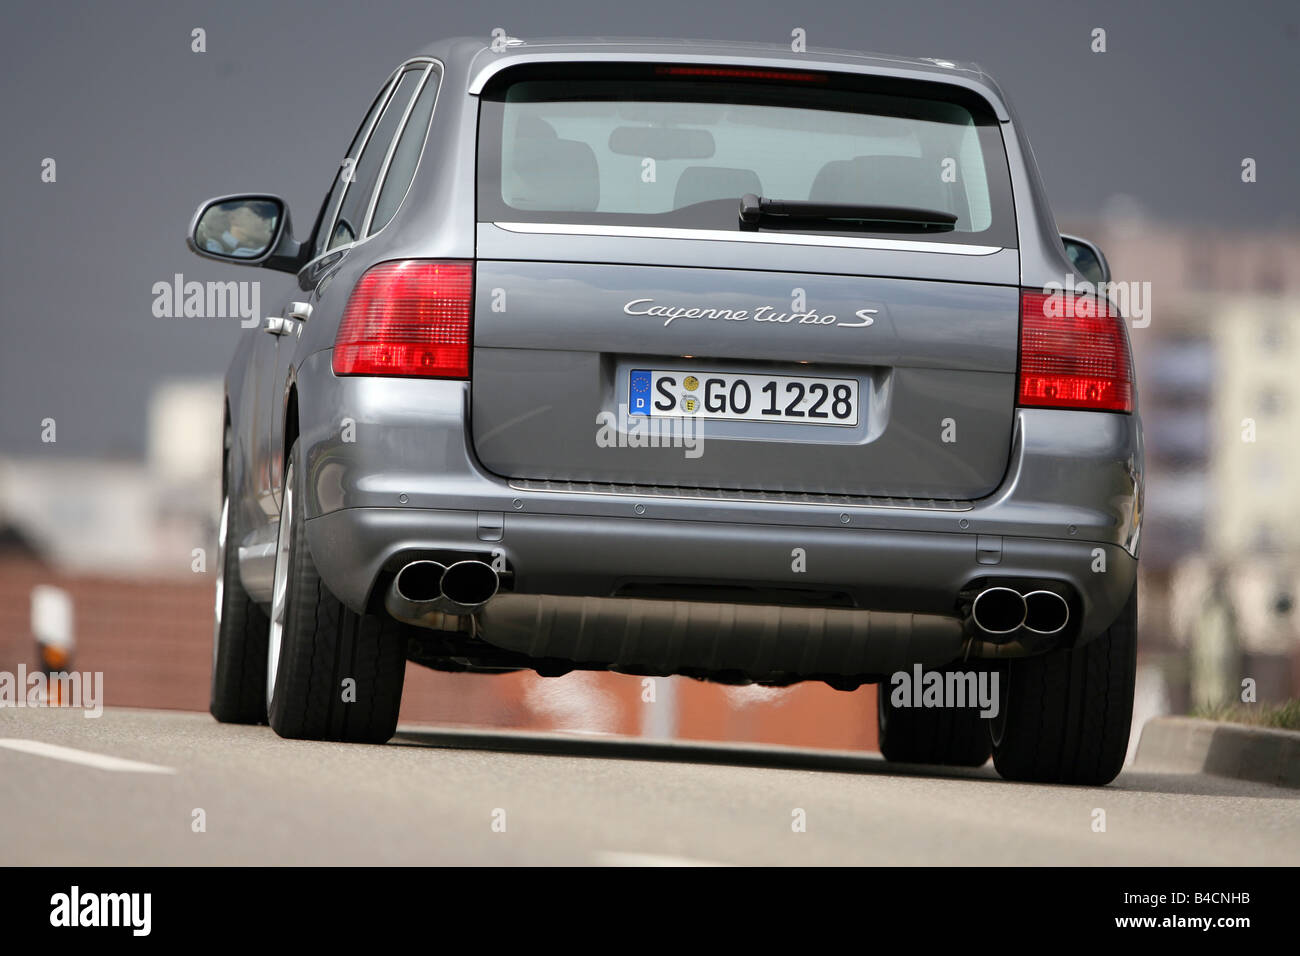 Porsche cayenne turbo s model year 2006 silver anthracite driving